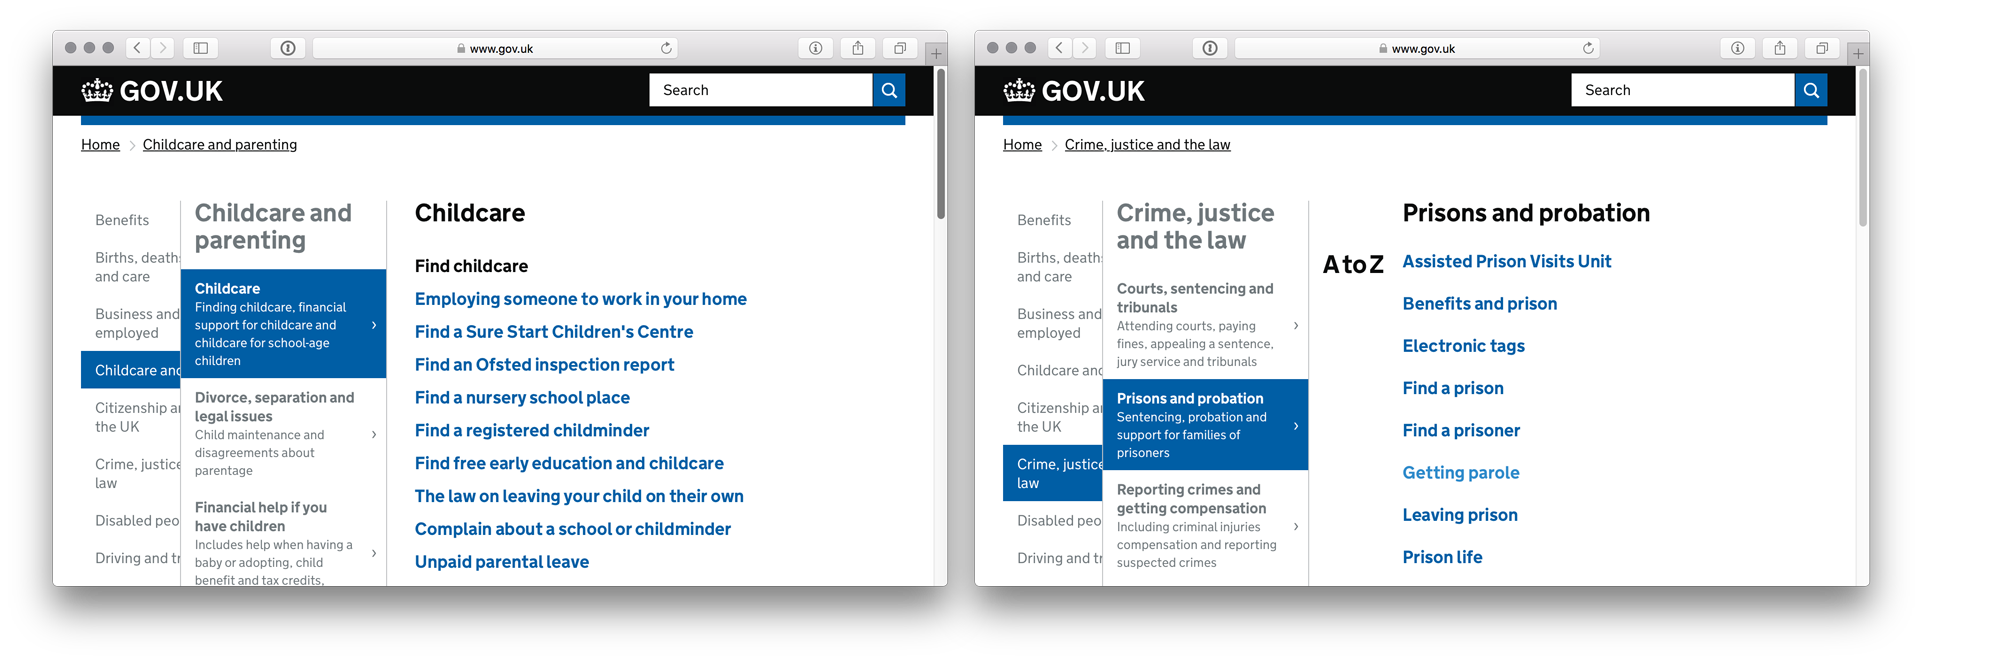 Screenshot of curated and non-curated pages